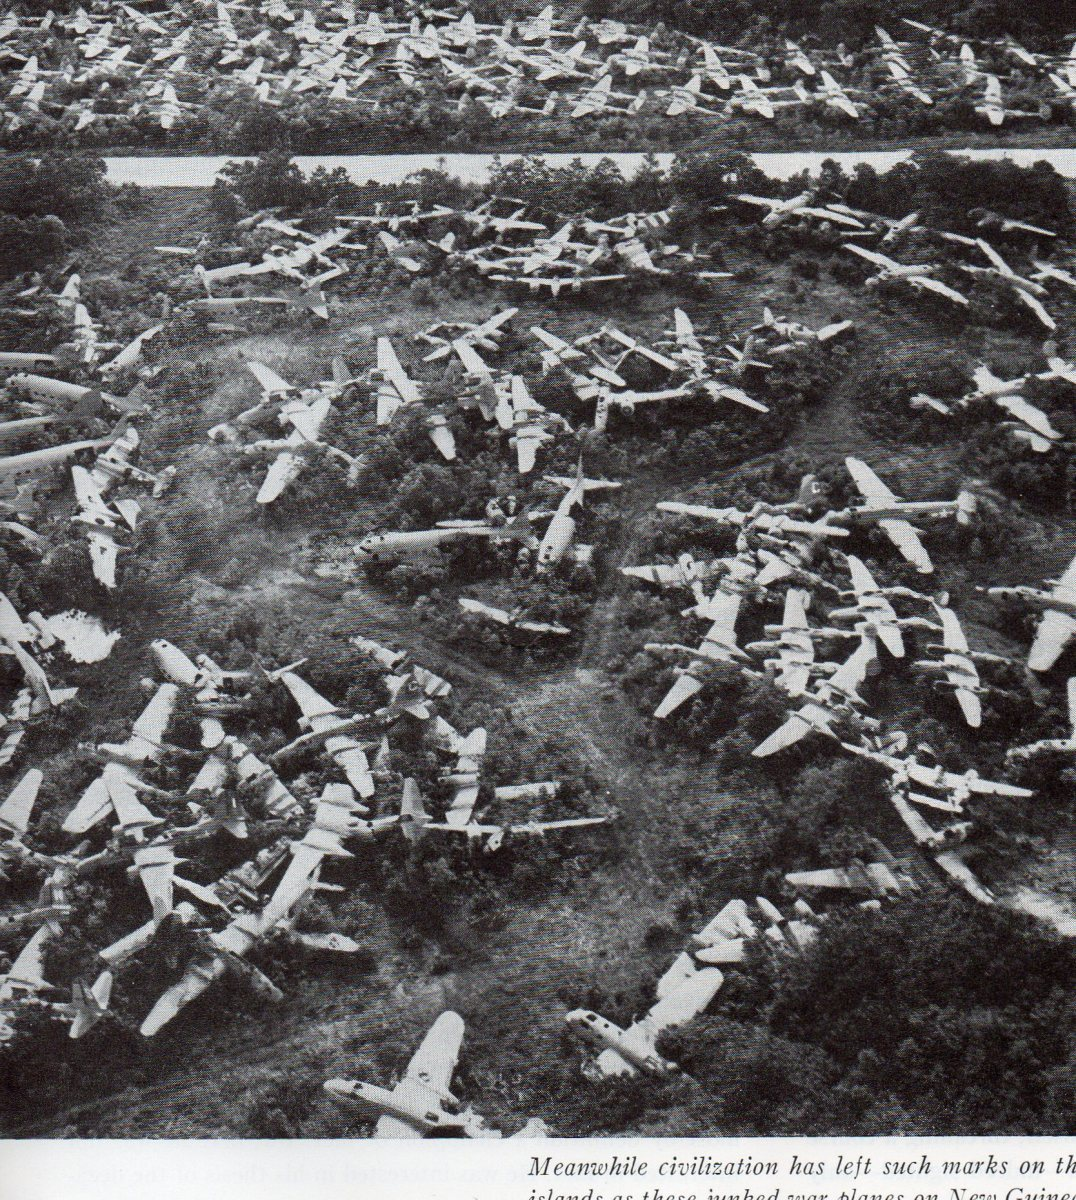 airplane-boneyards-graveyards-junkyards-cemetaries-mothballed-military-and-commercial-aircraft-soviet-american